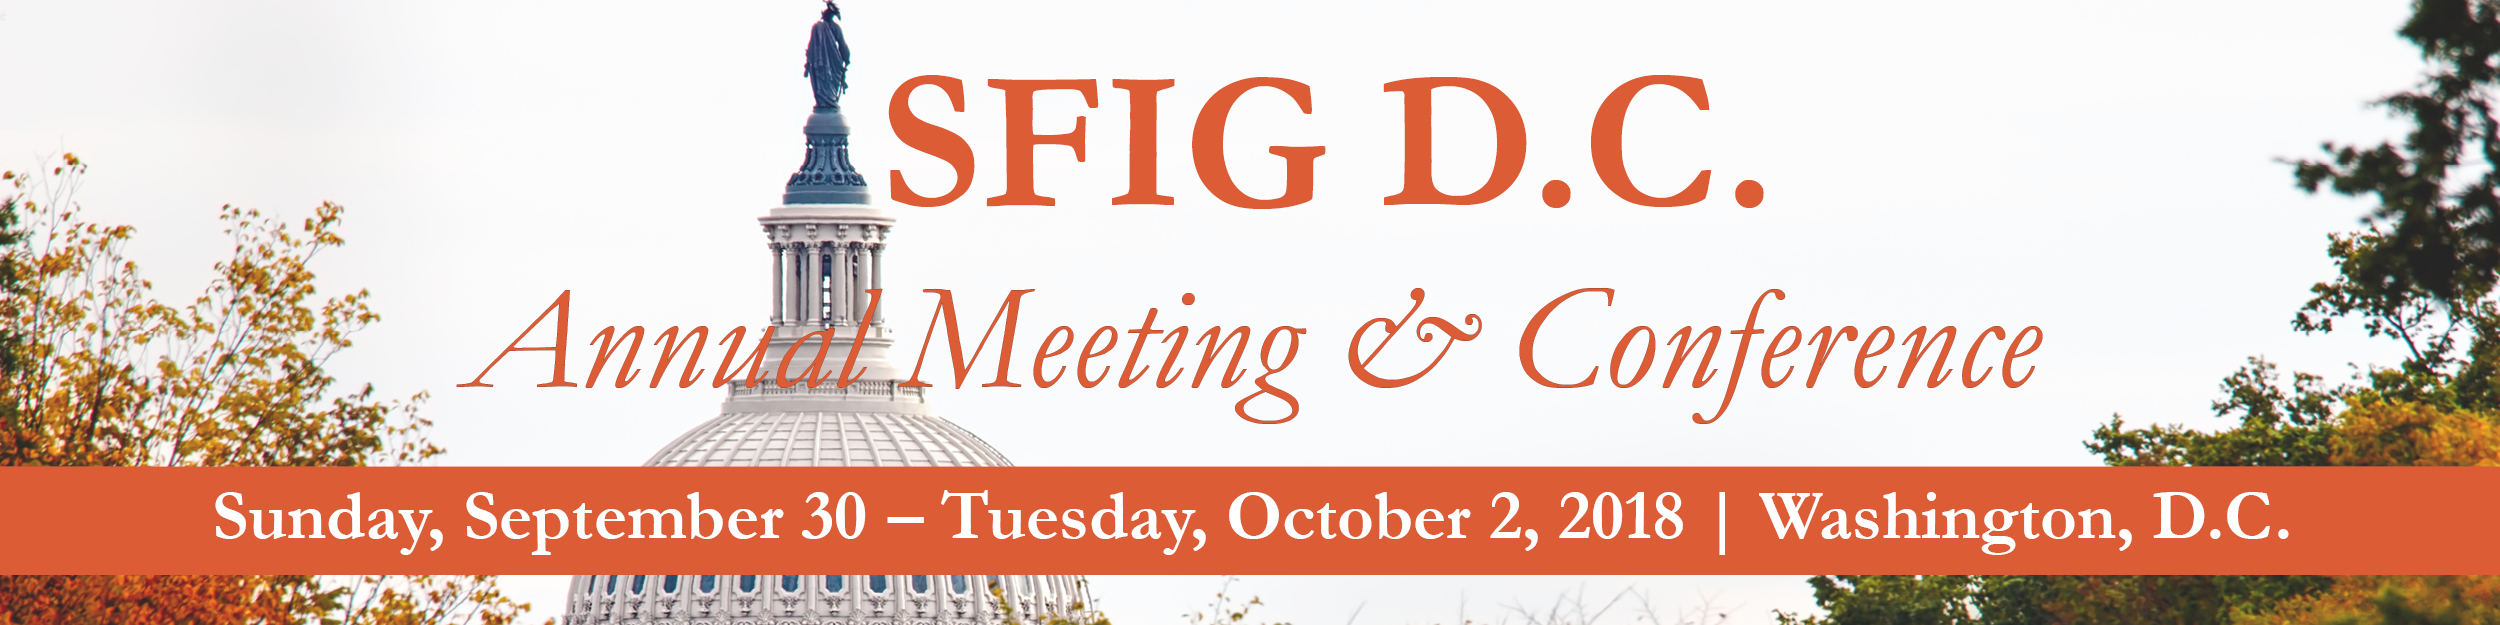 SFIG D.C. Annual Meeting & Conference